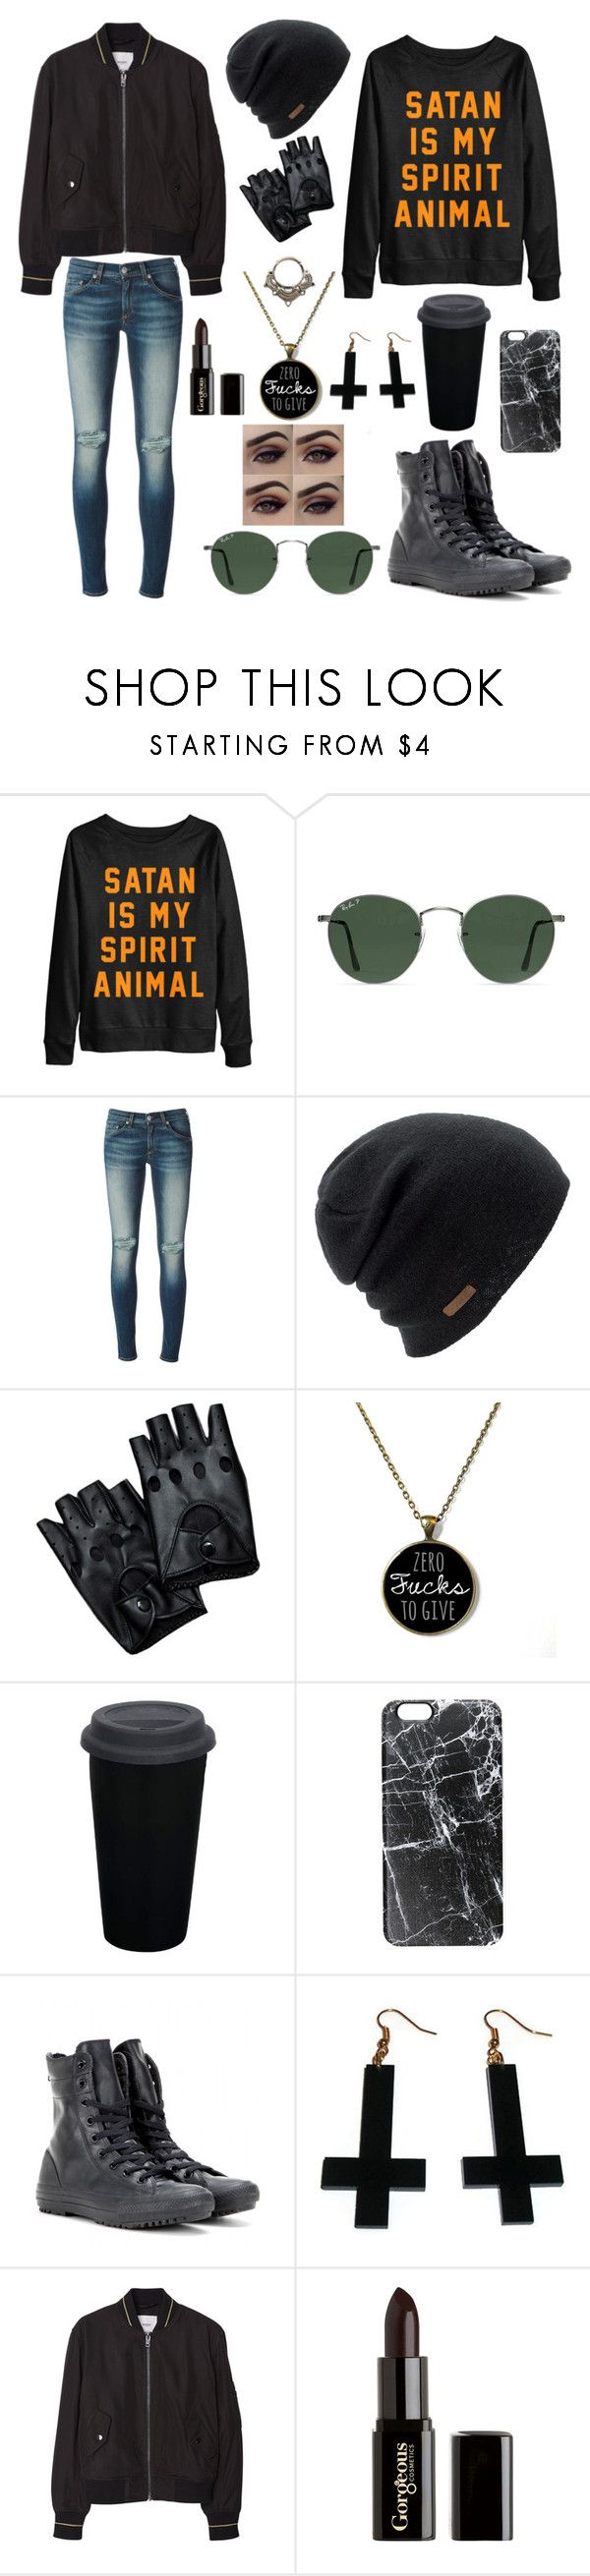 """Rebellious Disguise"" by luminous-intensity ❤ liked on Polyvore featuring Ray-Ban, rag & bone/JEAN, Coal, Casetify, Converse, Chicnova Fashion, MANGO and Gorgeous Cosmetics"